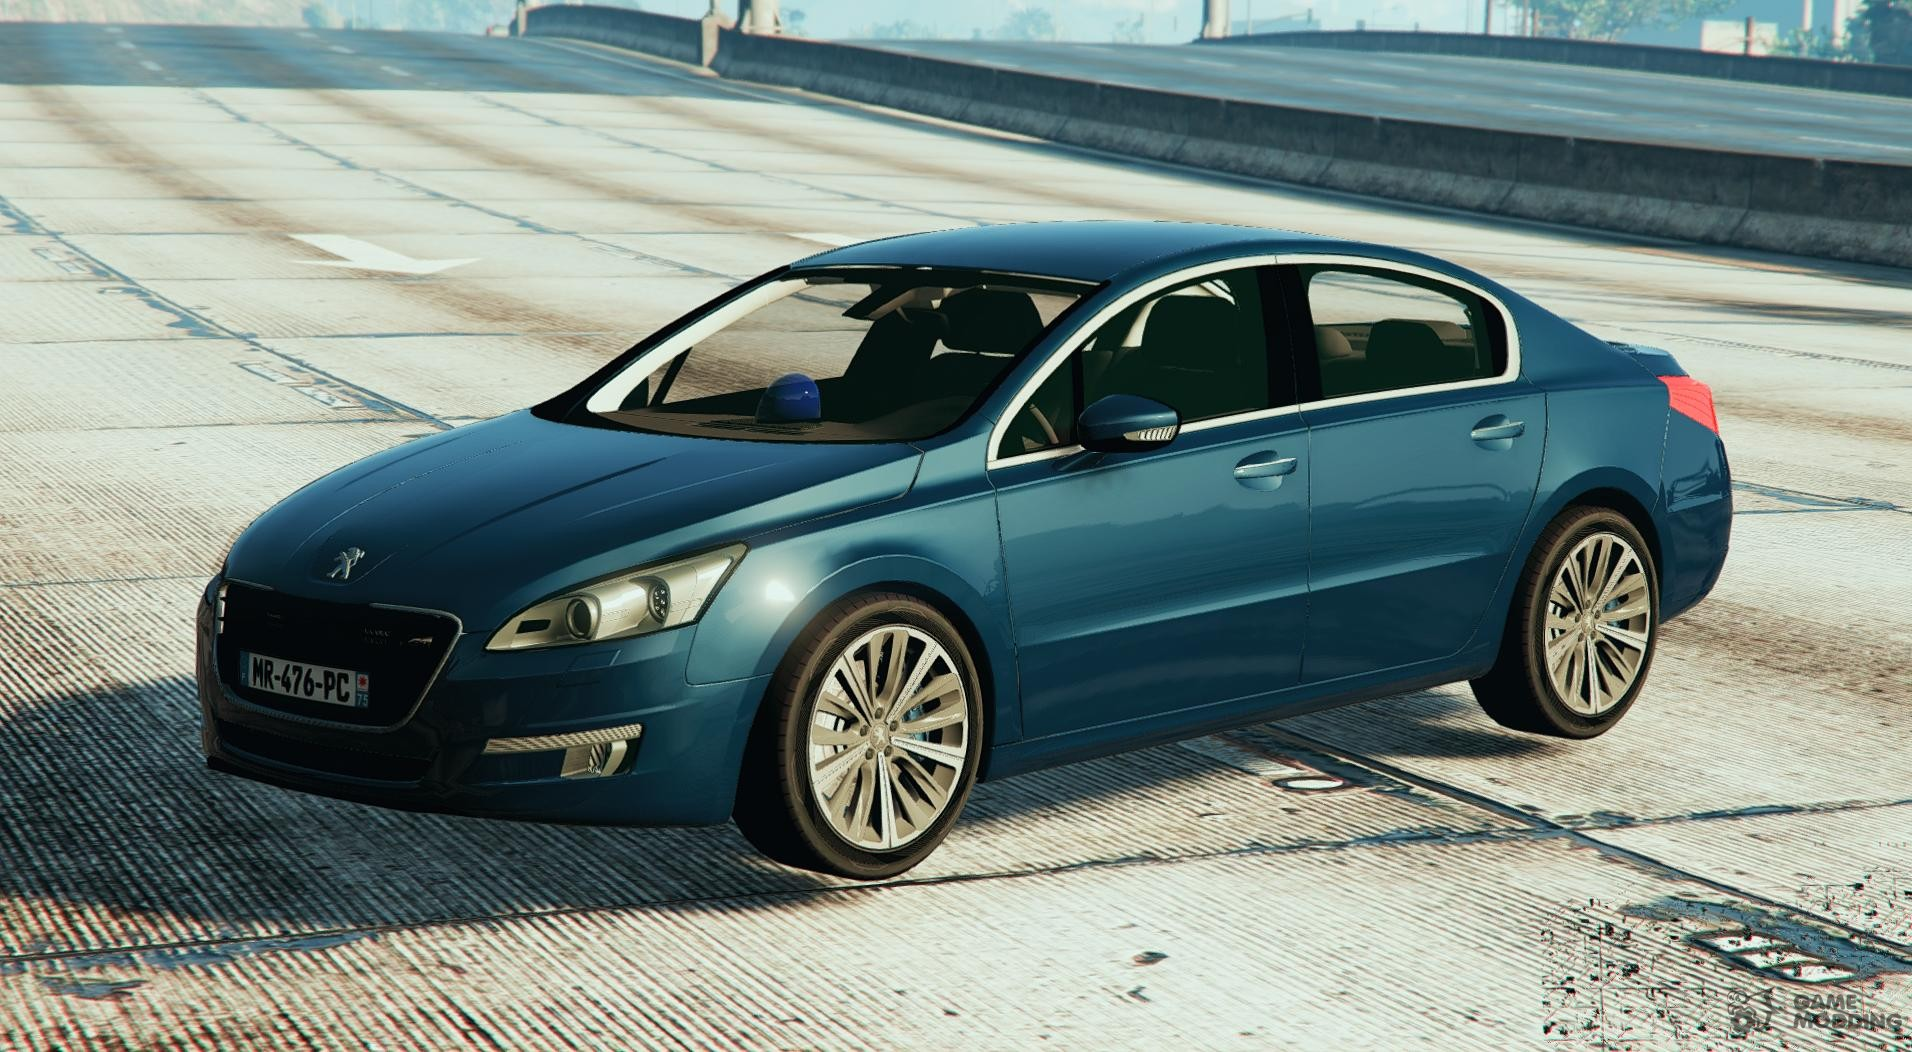 Unmarked police car gta 5 - Peugeot 508 Police Nationale Banalis E Unmarked Police For Gta 5